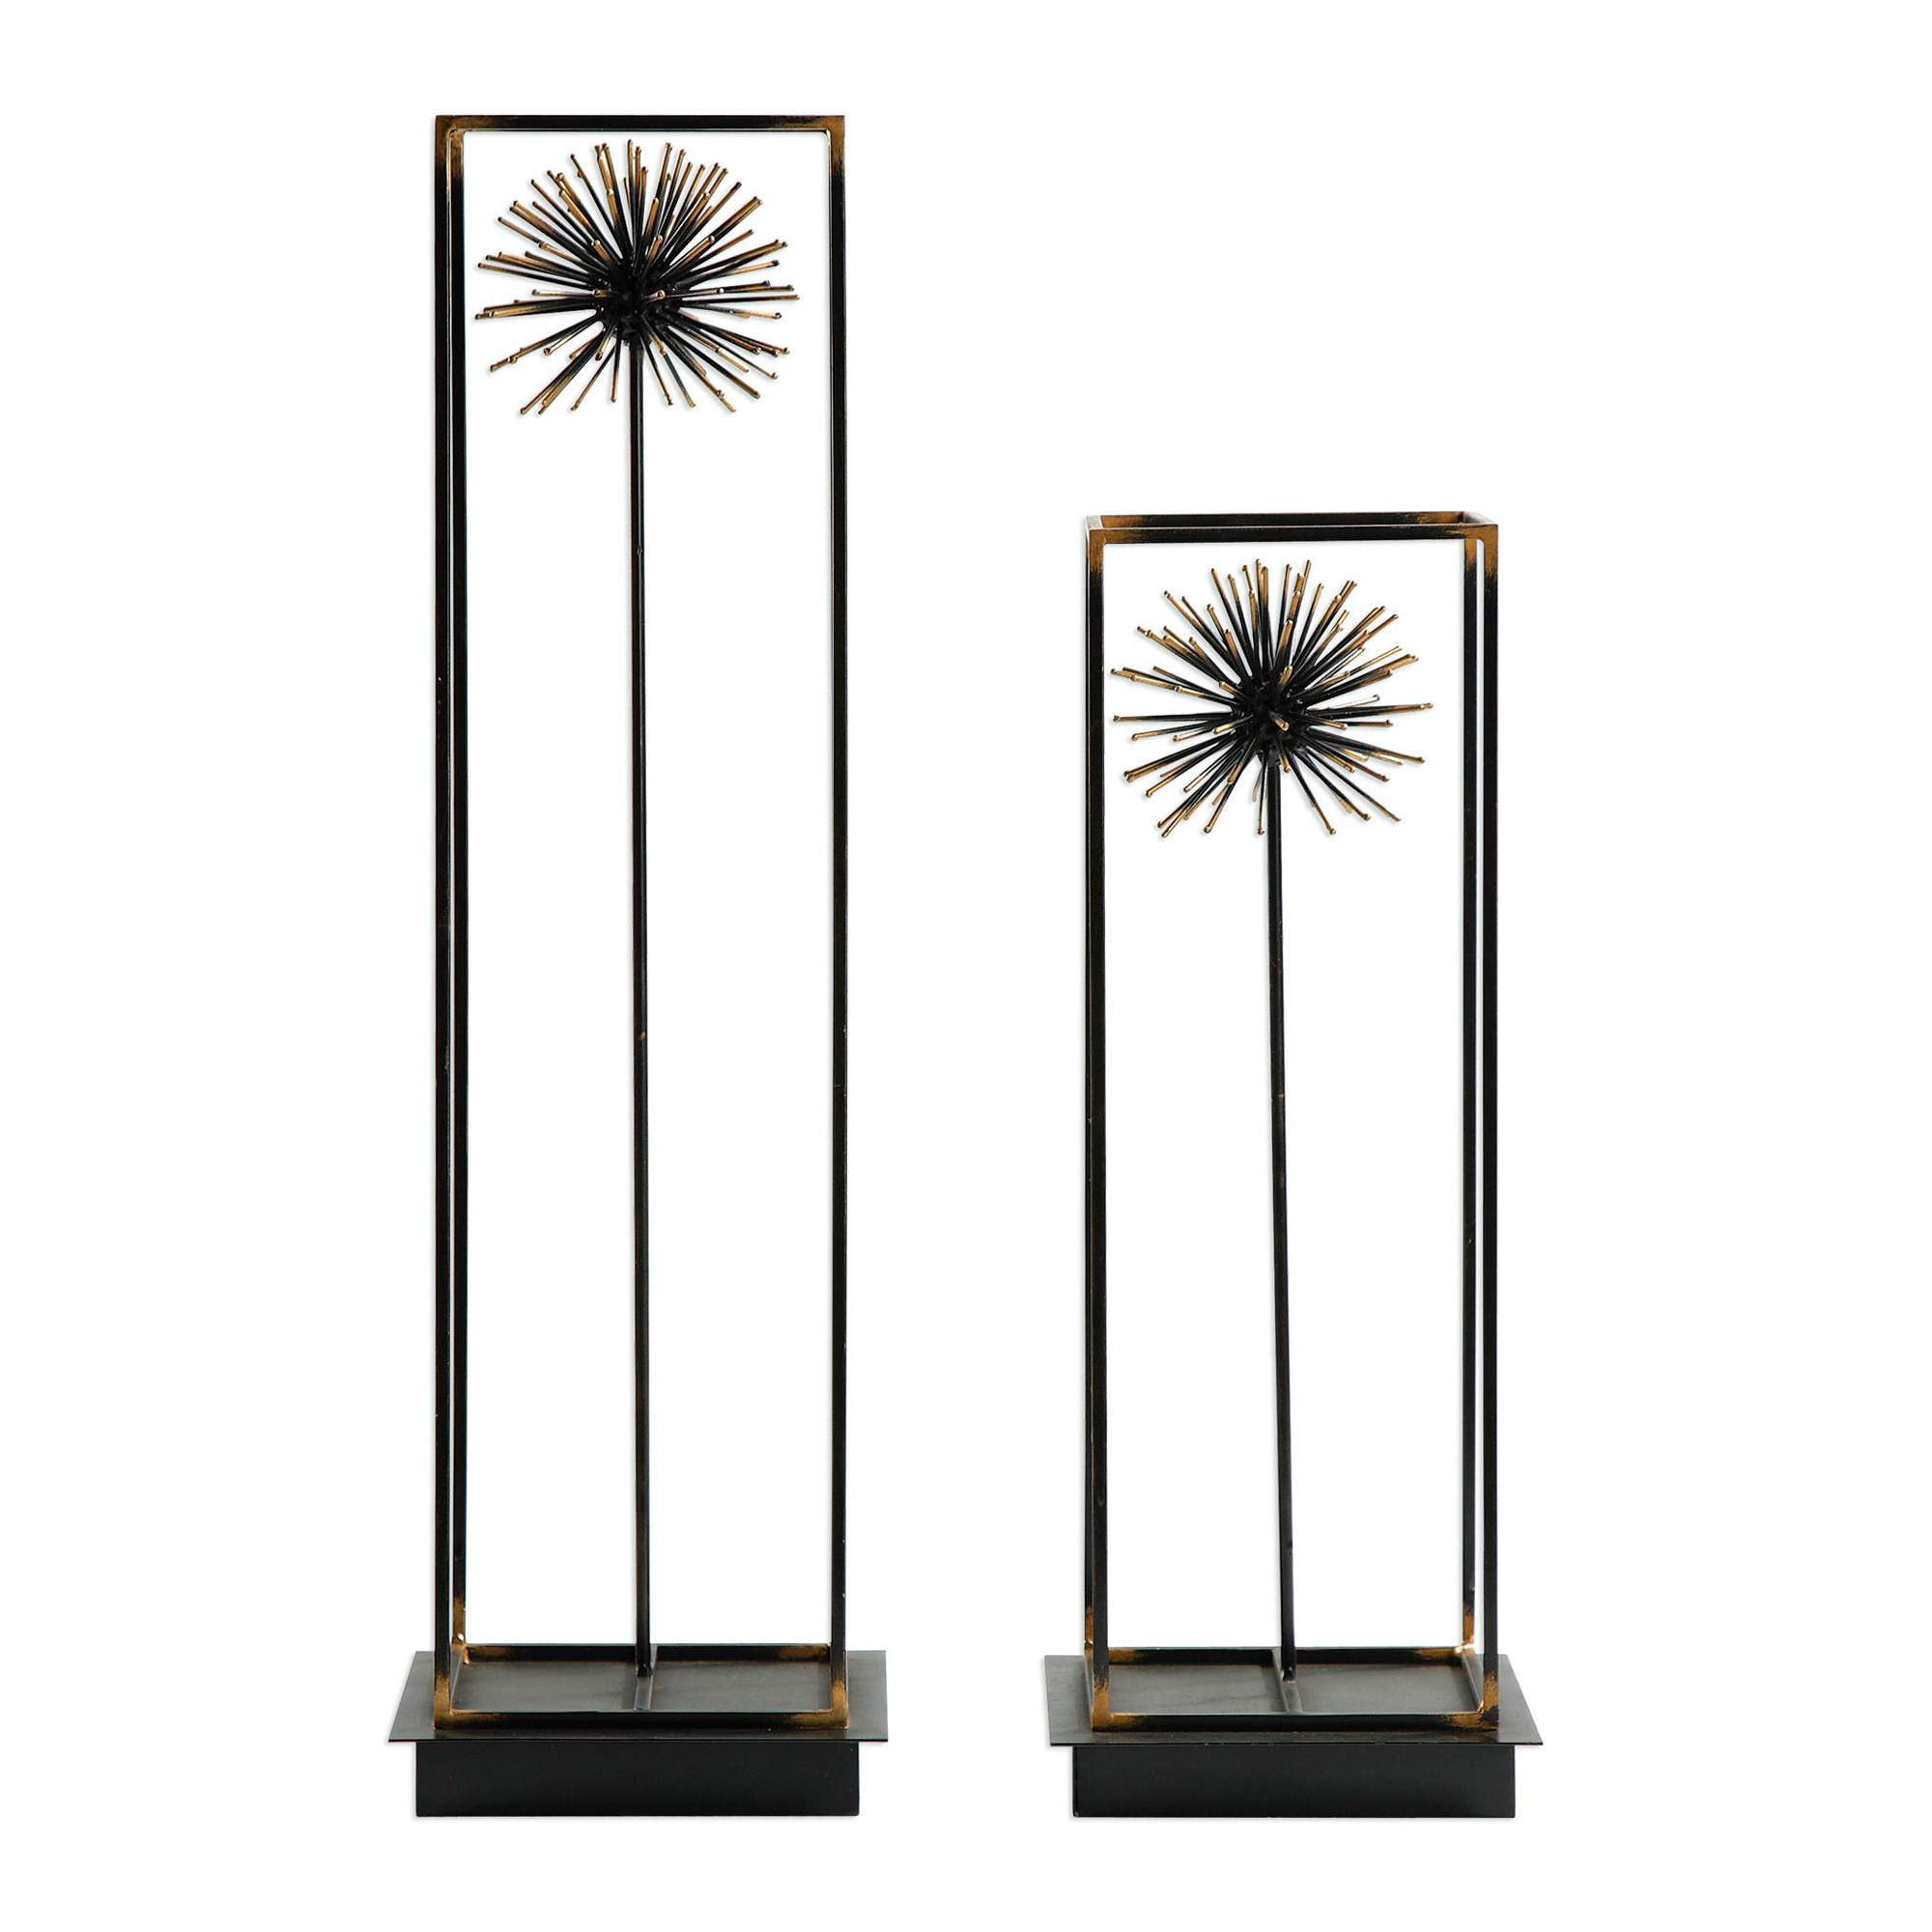 Uttermost | Golden Set of 2 Dandelion Sculptures | Black